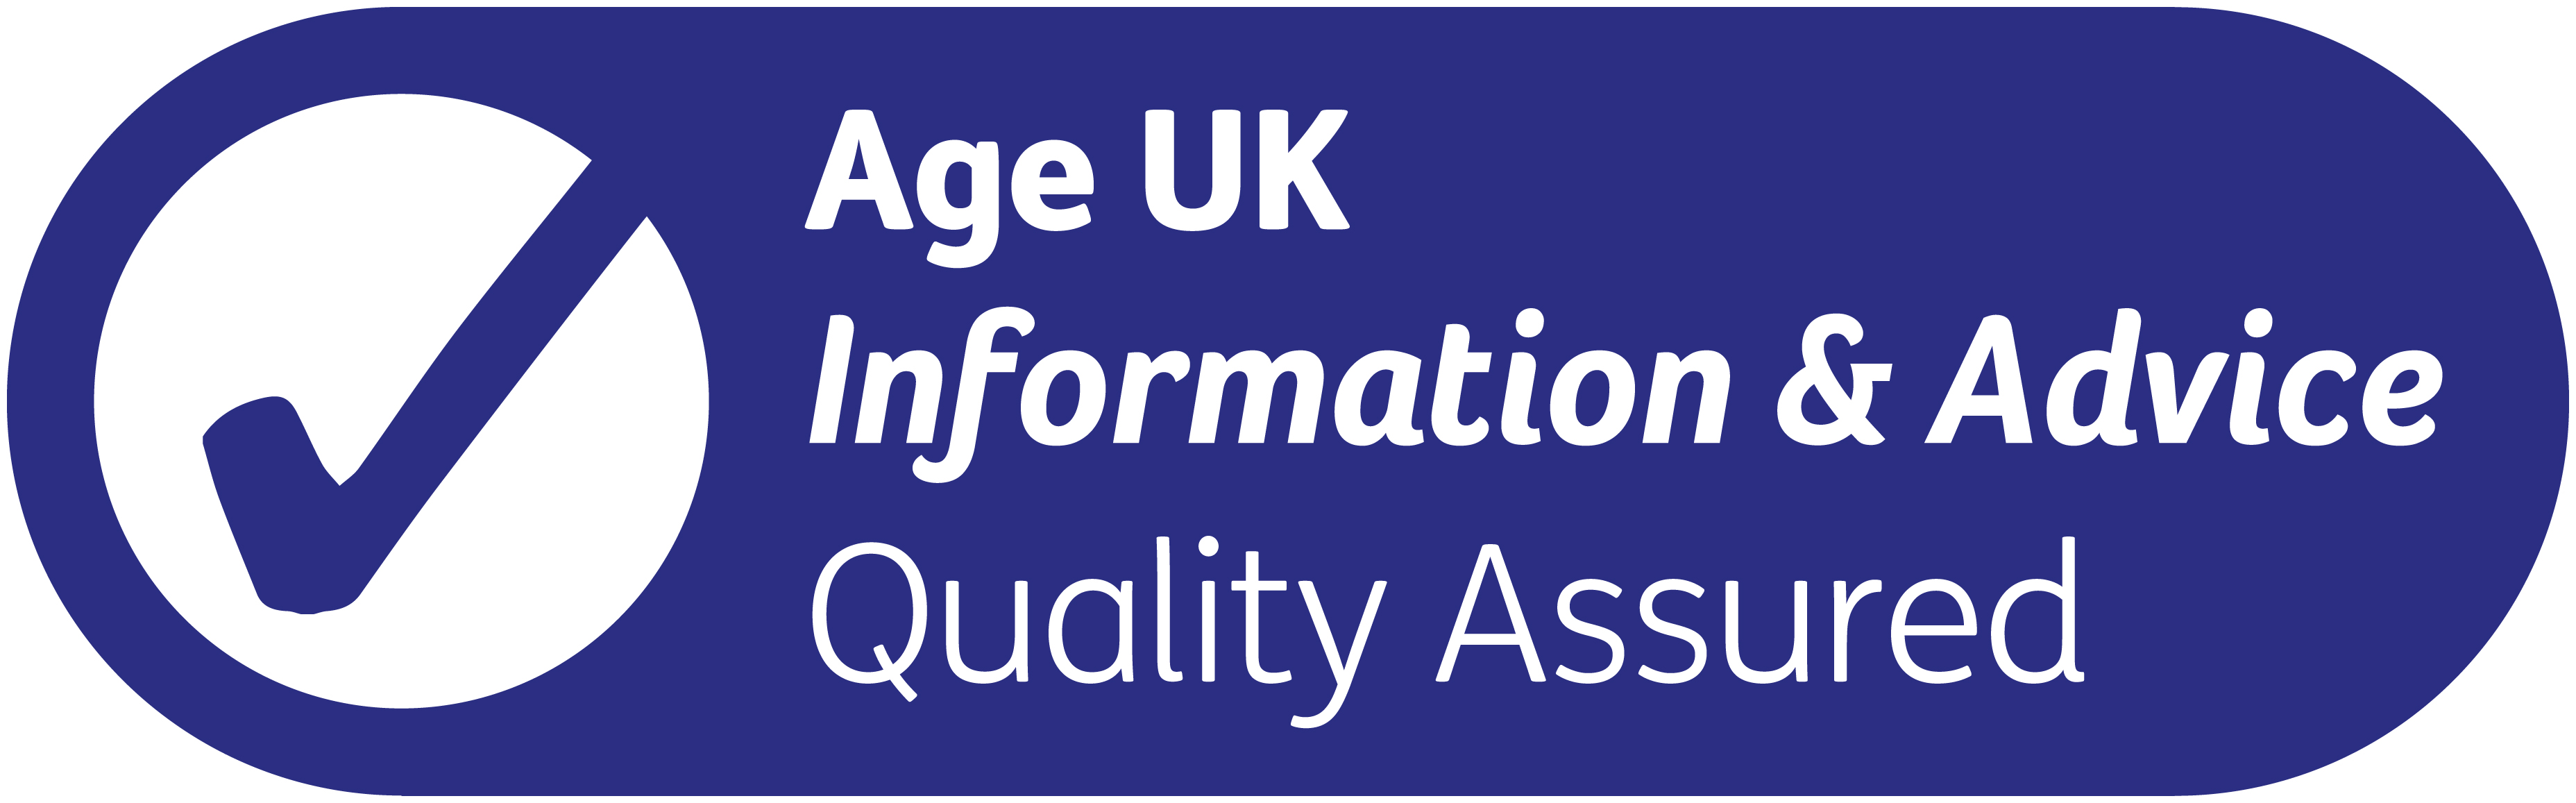 Age UK Information and Advice Quality Programme marque